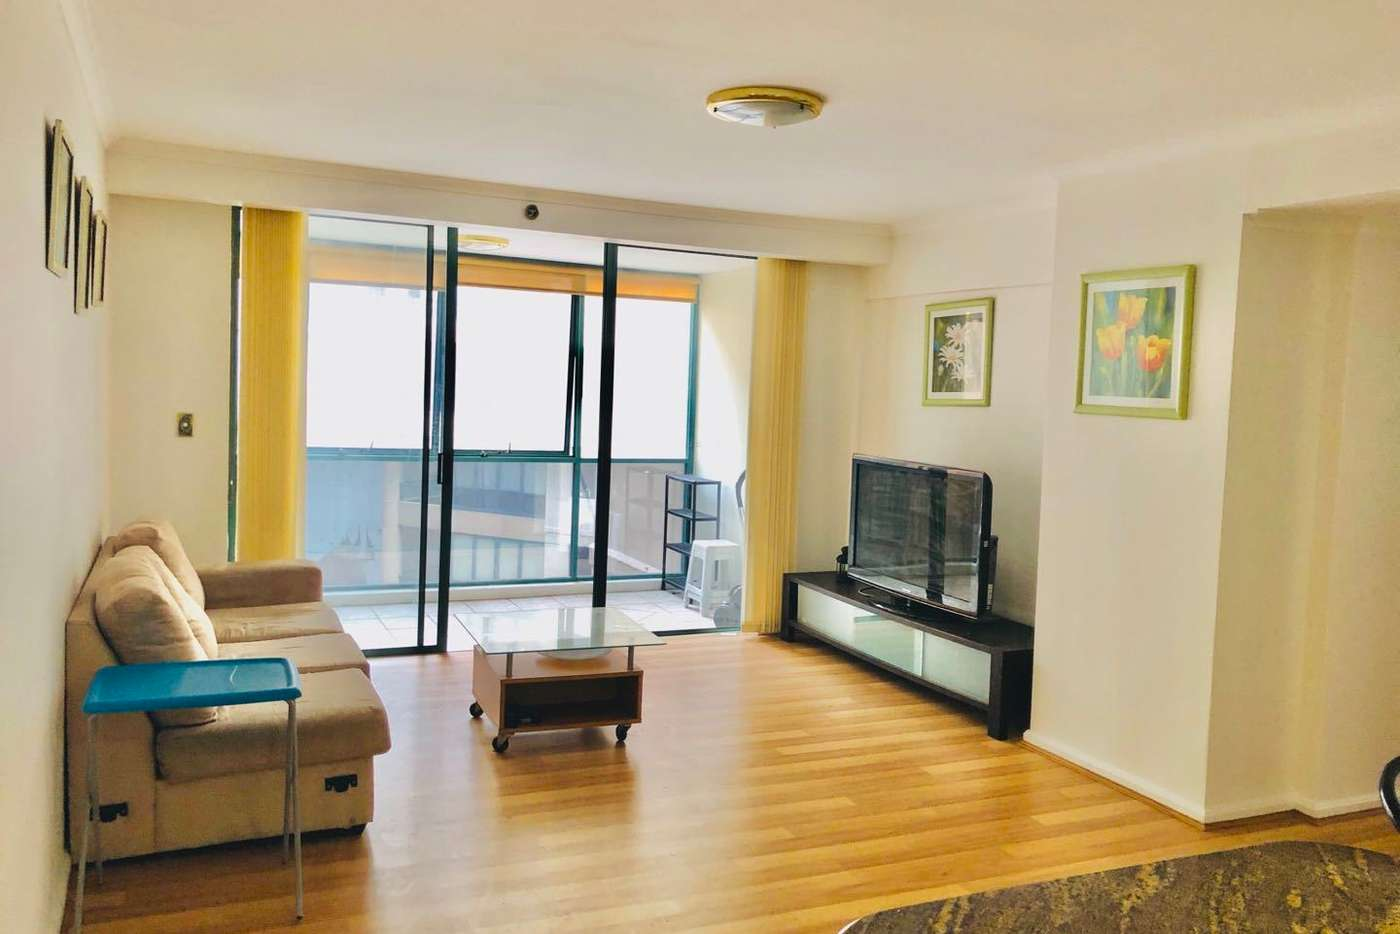 Seventh view of Homely apartment listing, 418 Pitt Street, Sydney NSW 2000